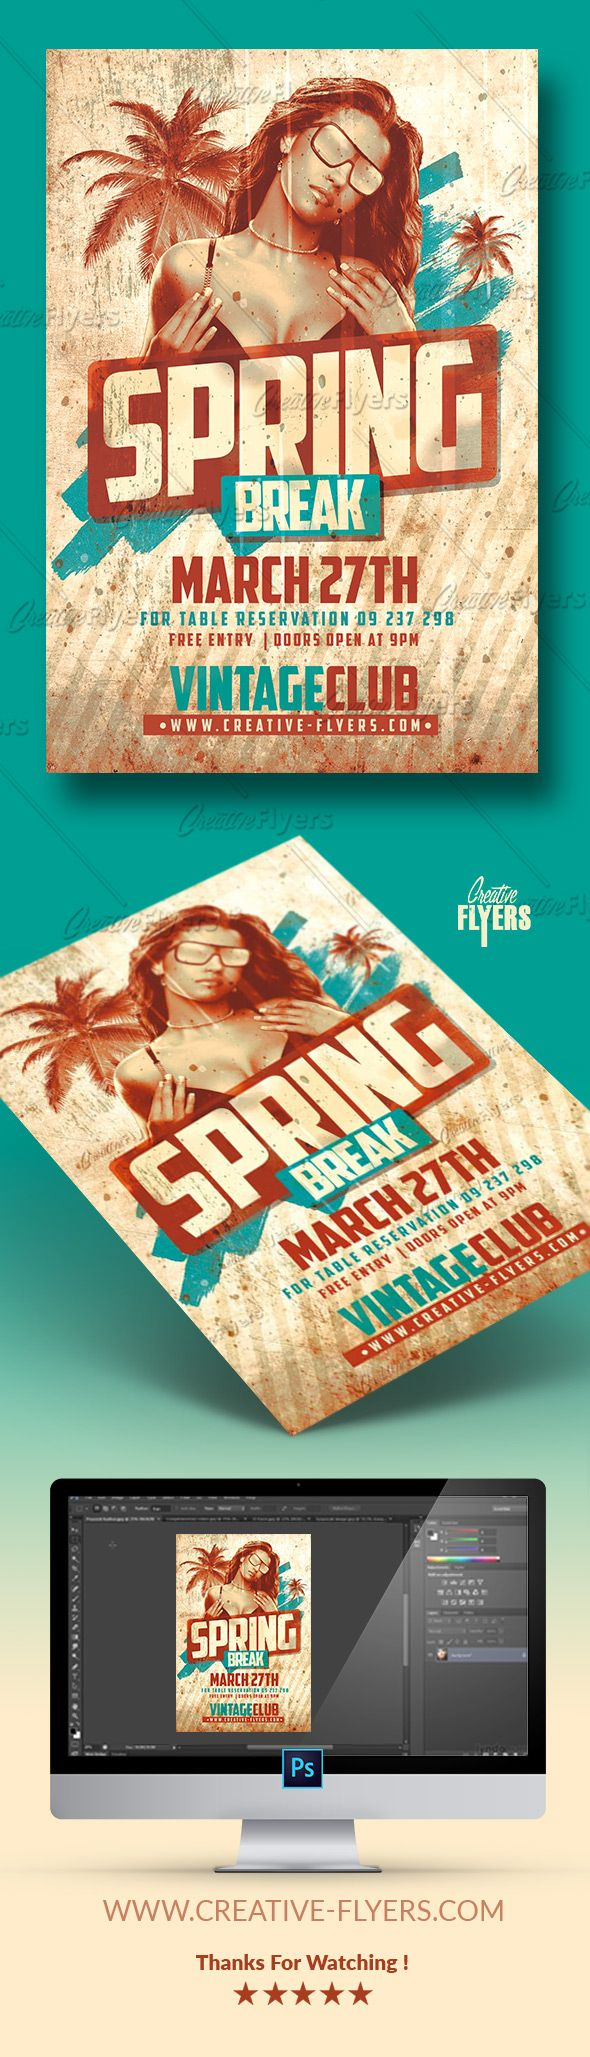 Create A Vintage Flyer Perfect To Promote Your Spring Break, Or Event With  These Psd Photoshop Templates… #spring #break #springbreak #flyer #vintage # Retro